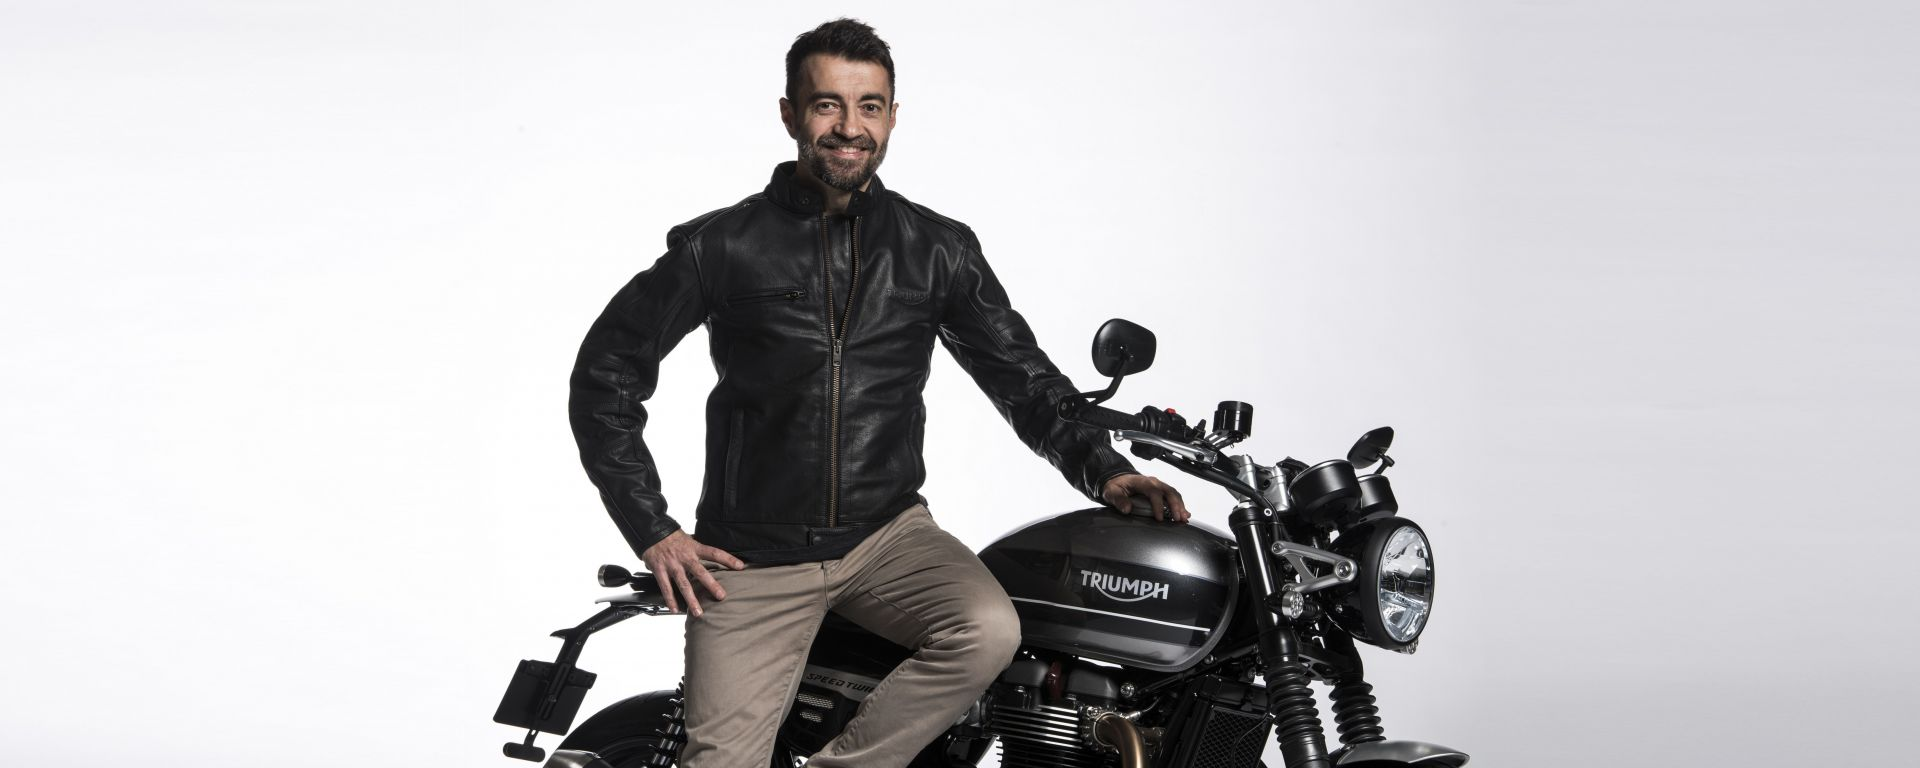 Alberto Marazzini, nuovo Marketing e PR Manager di Triumph Italia